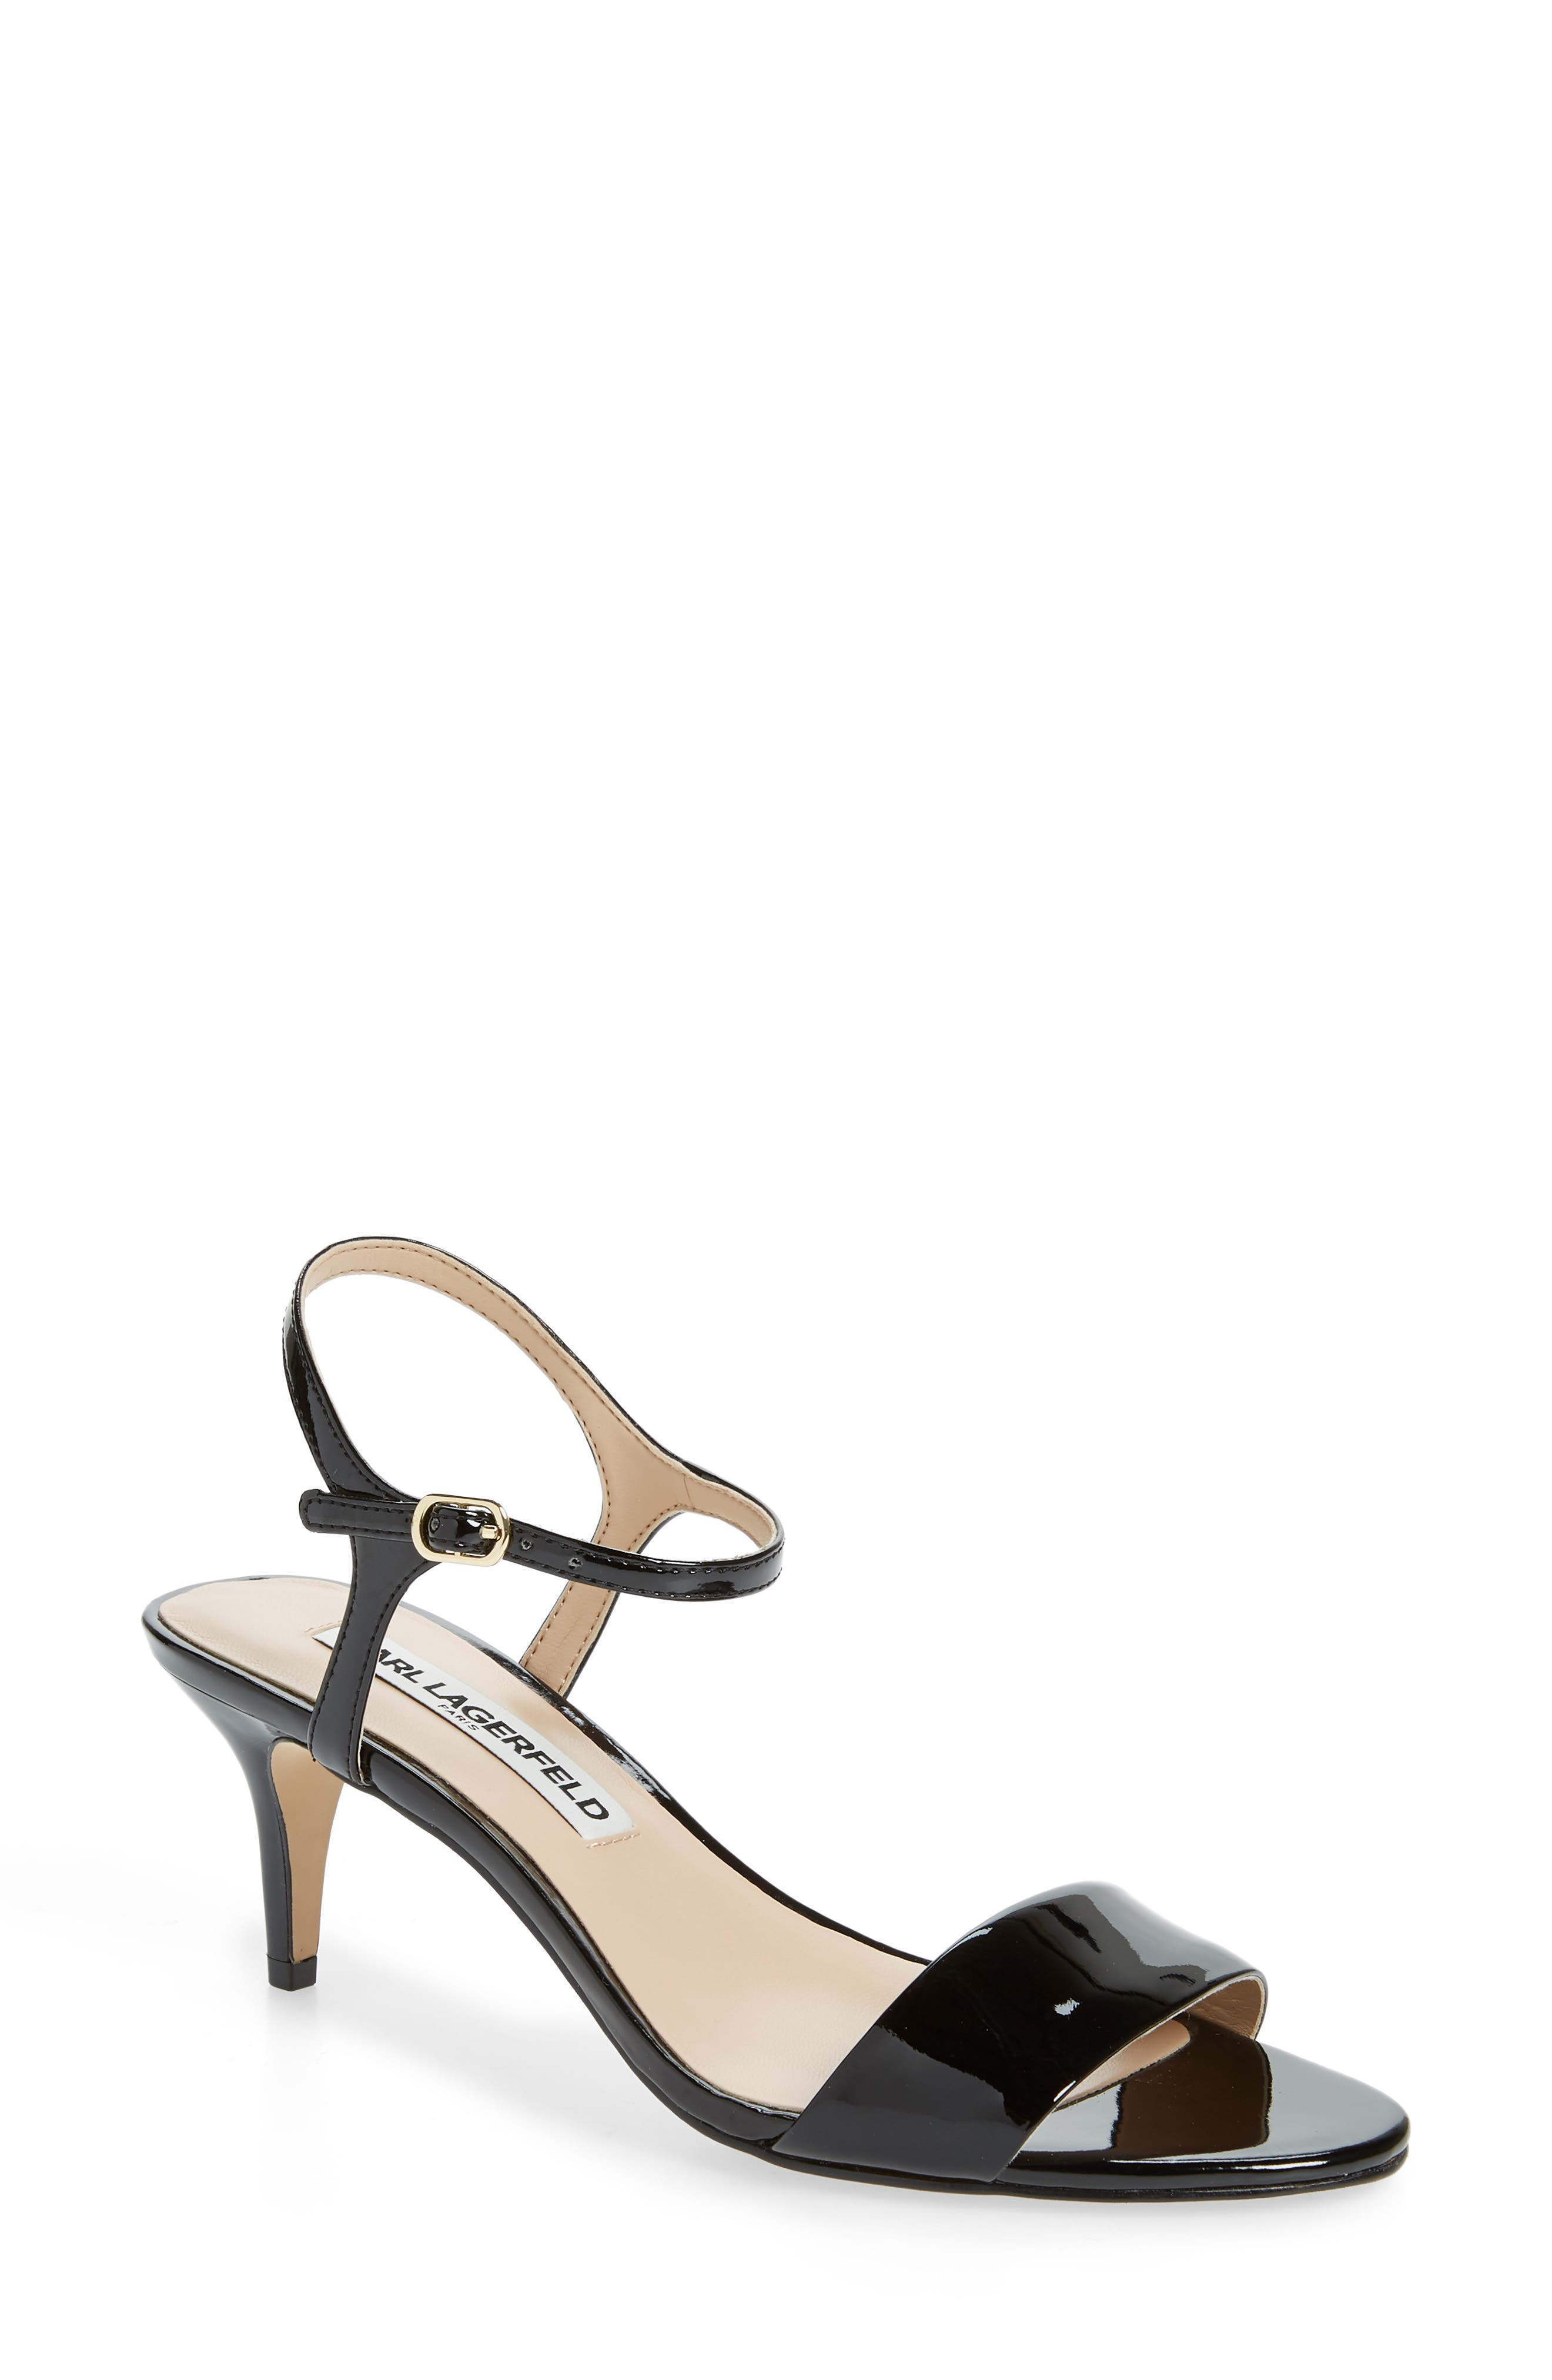 fa7ec75a7091d A demure kitten heel provides just-right lift to a svelte strappy sandal  furnished with a memory foam footbed for comfort that lasts from desk to  dinner.